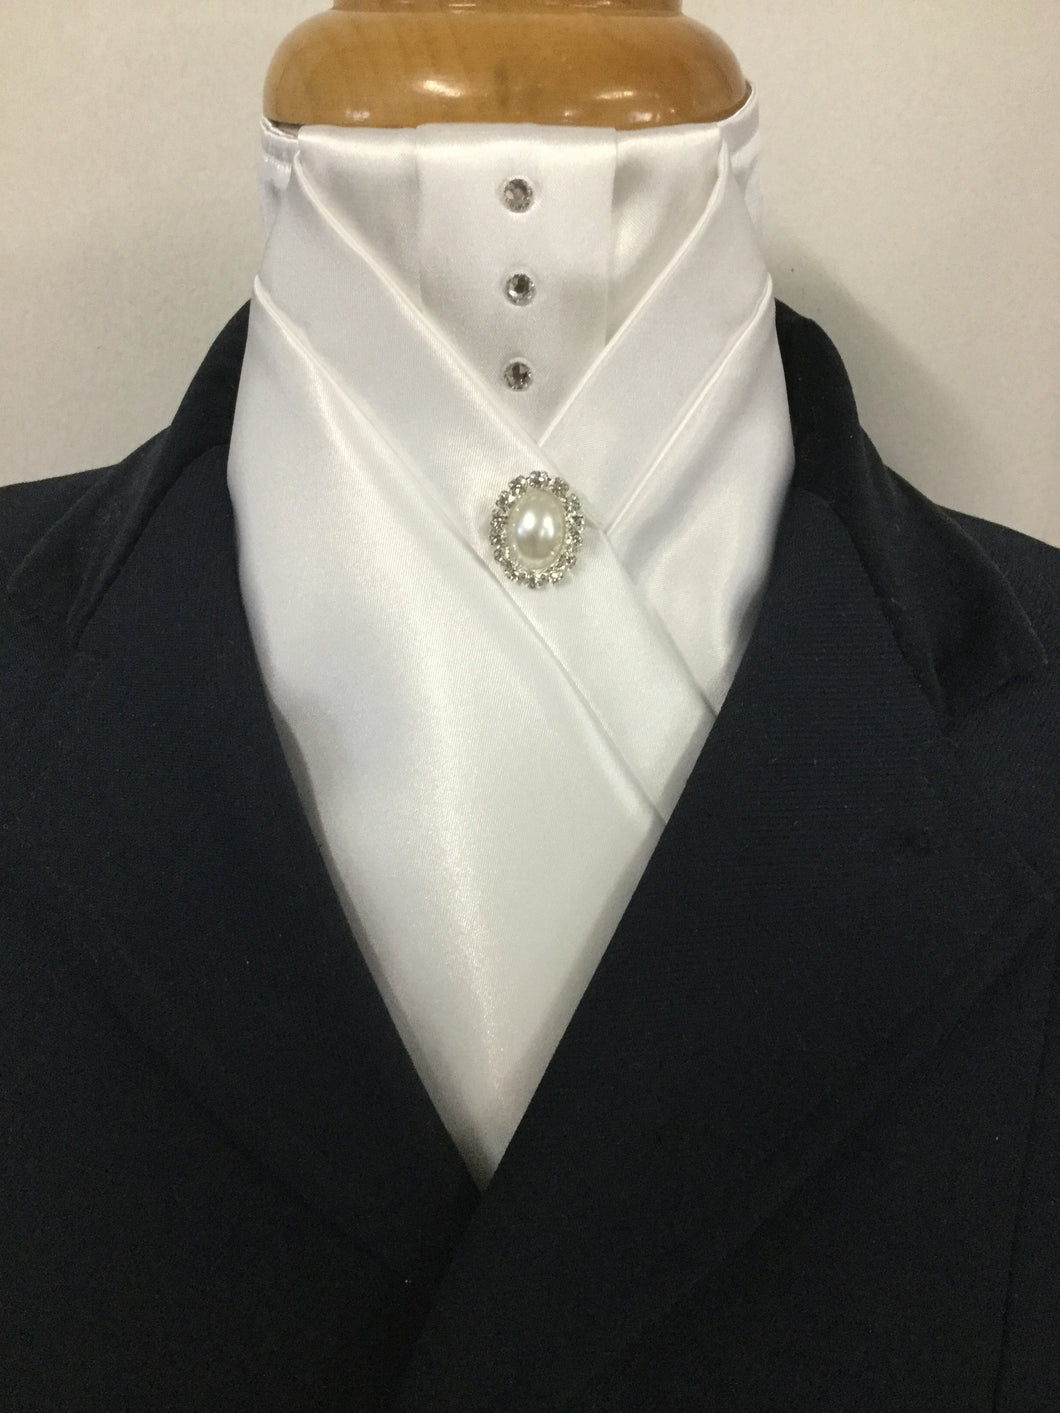 HHD 'Anna' White or Ivory Stock Tie with Swarovski Elements